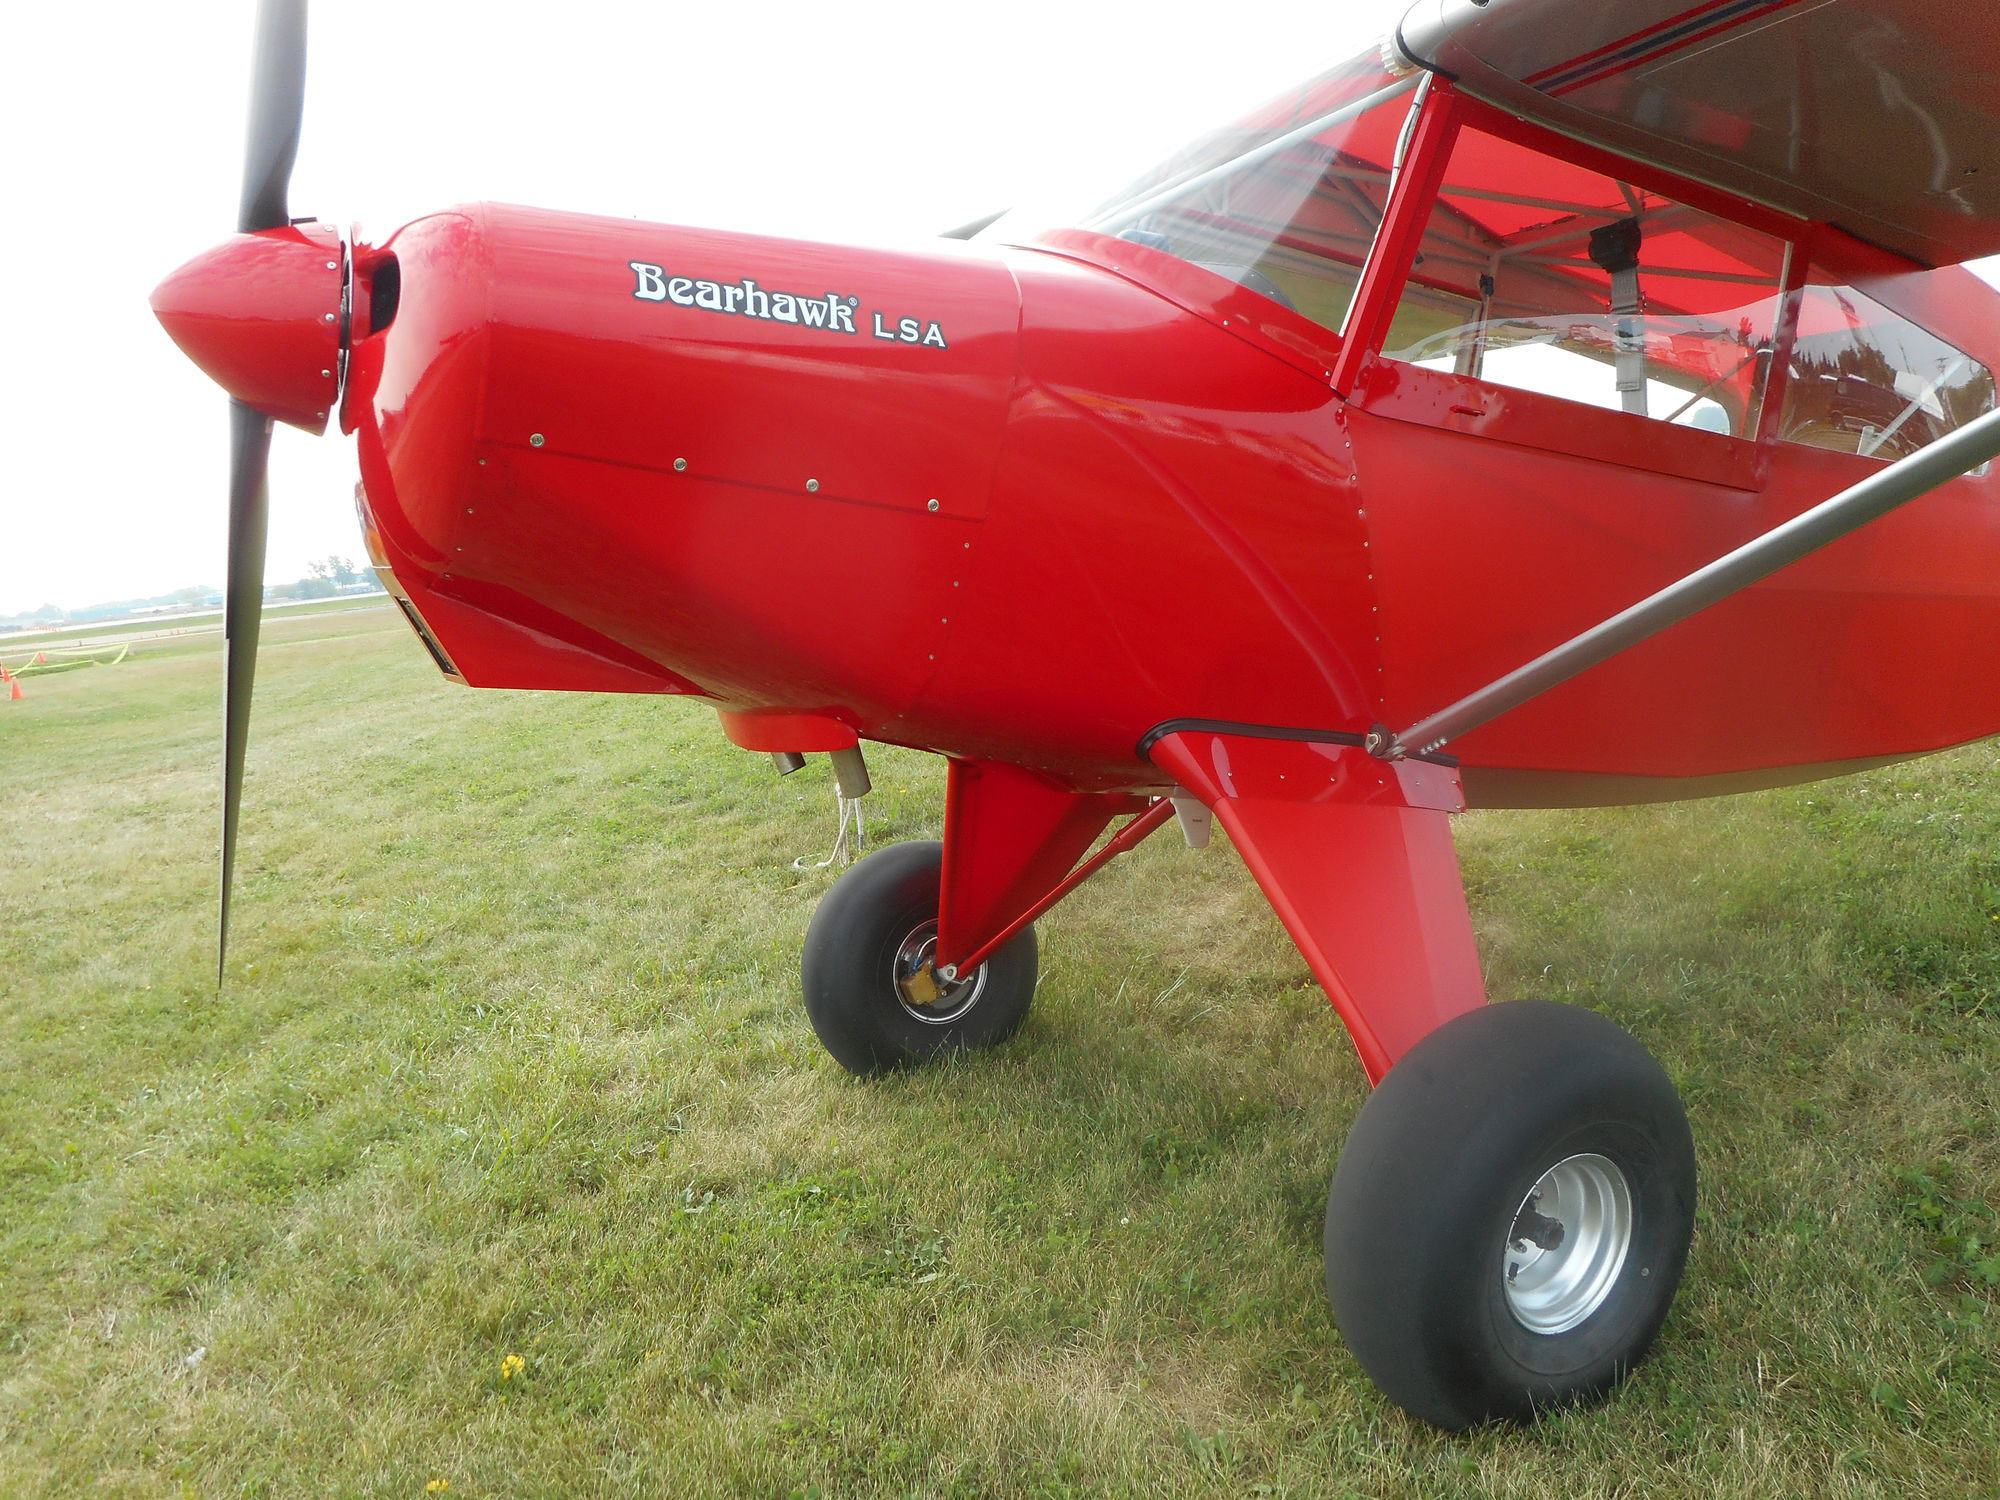 2-person LSA / piston engine / single-engine - Bearhawk